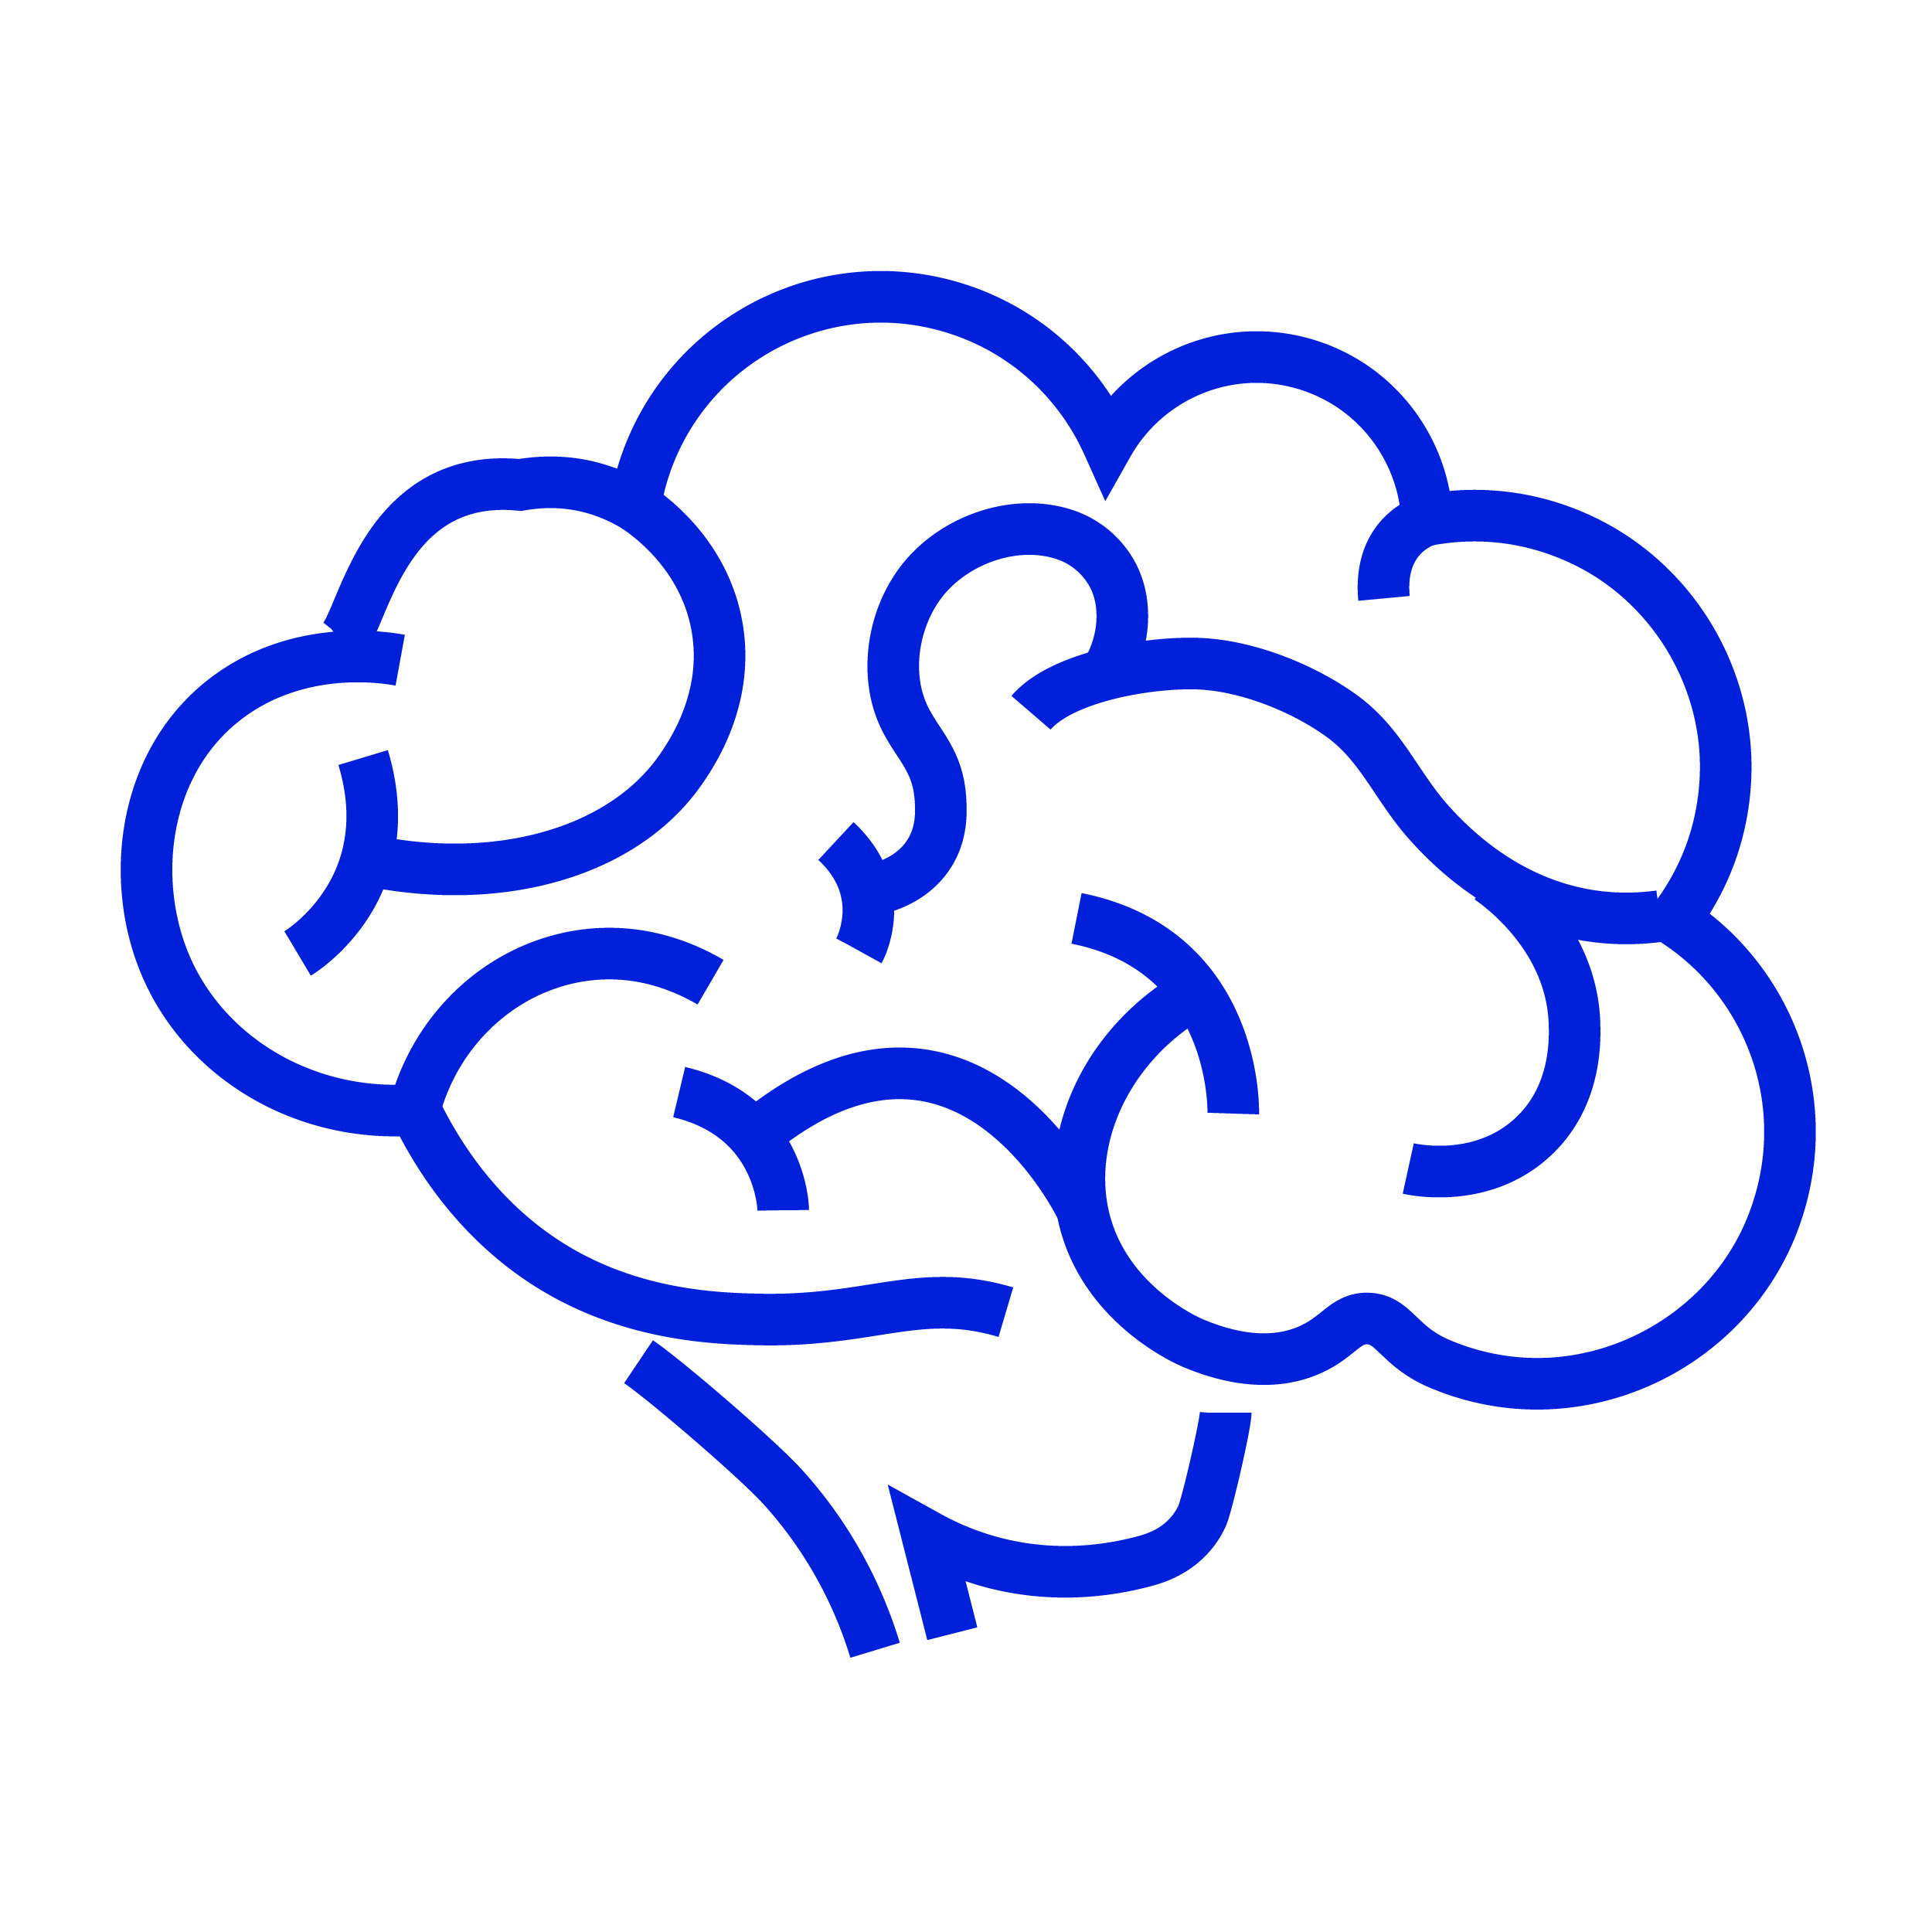 outline of brain icon